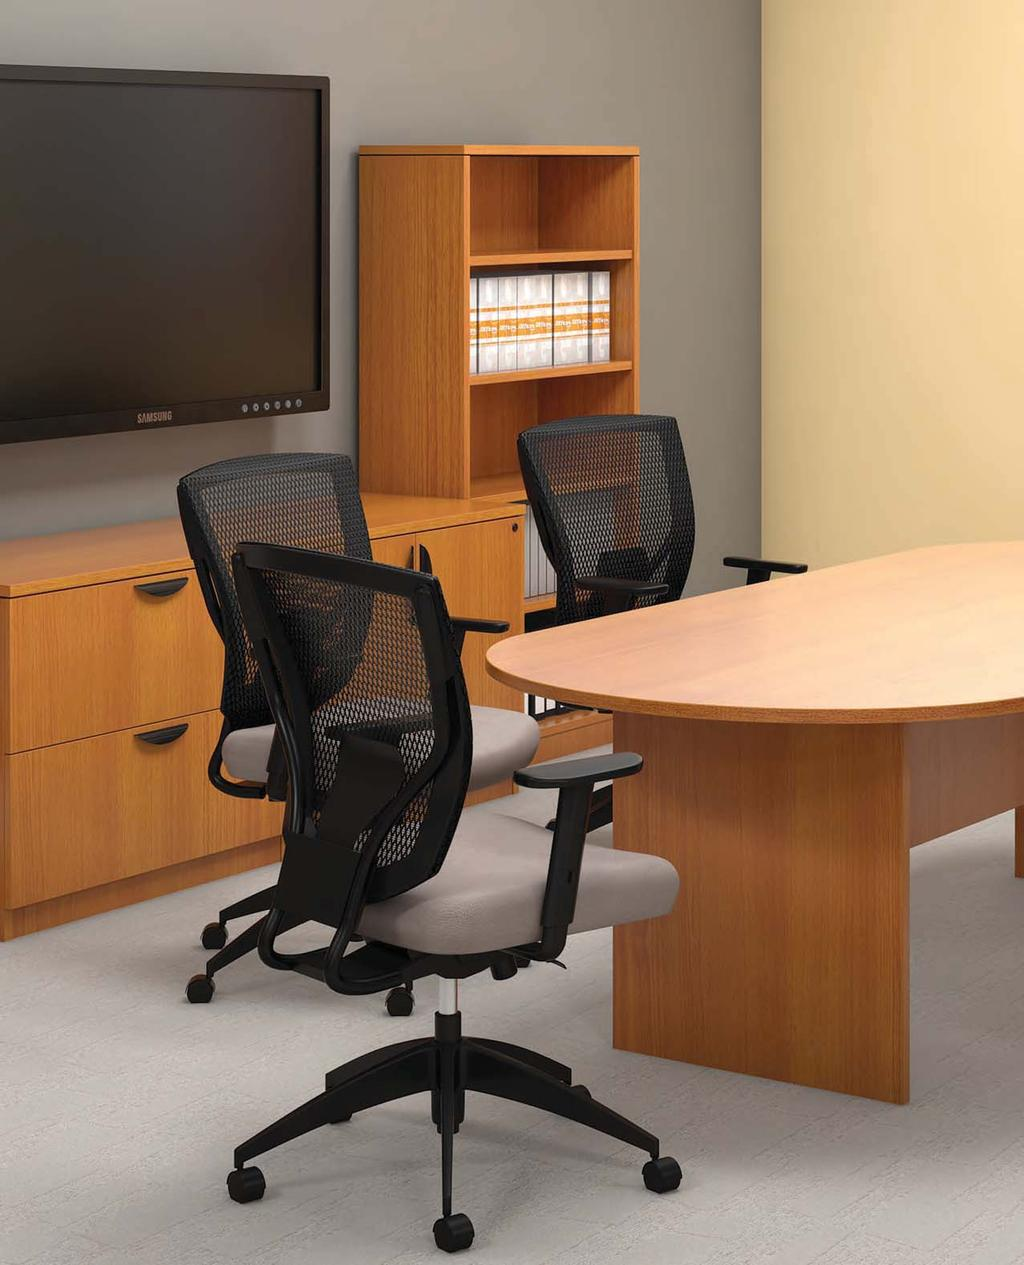 Affordable lobby furniture & Affordable office